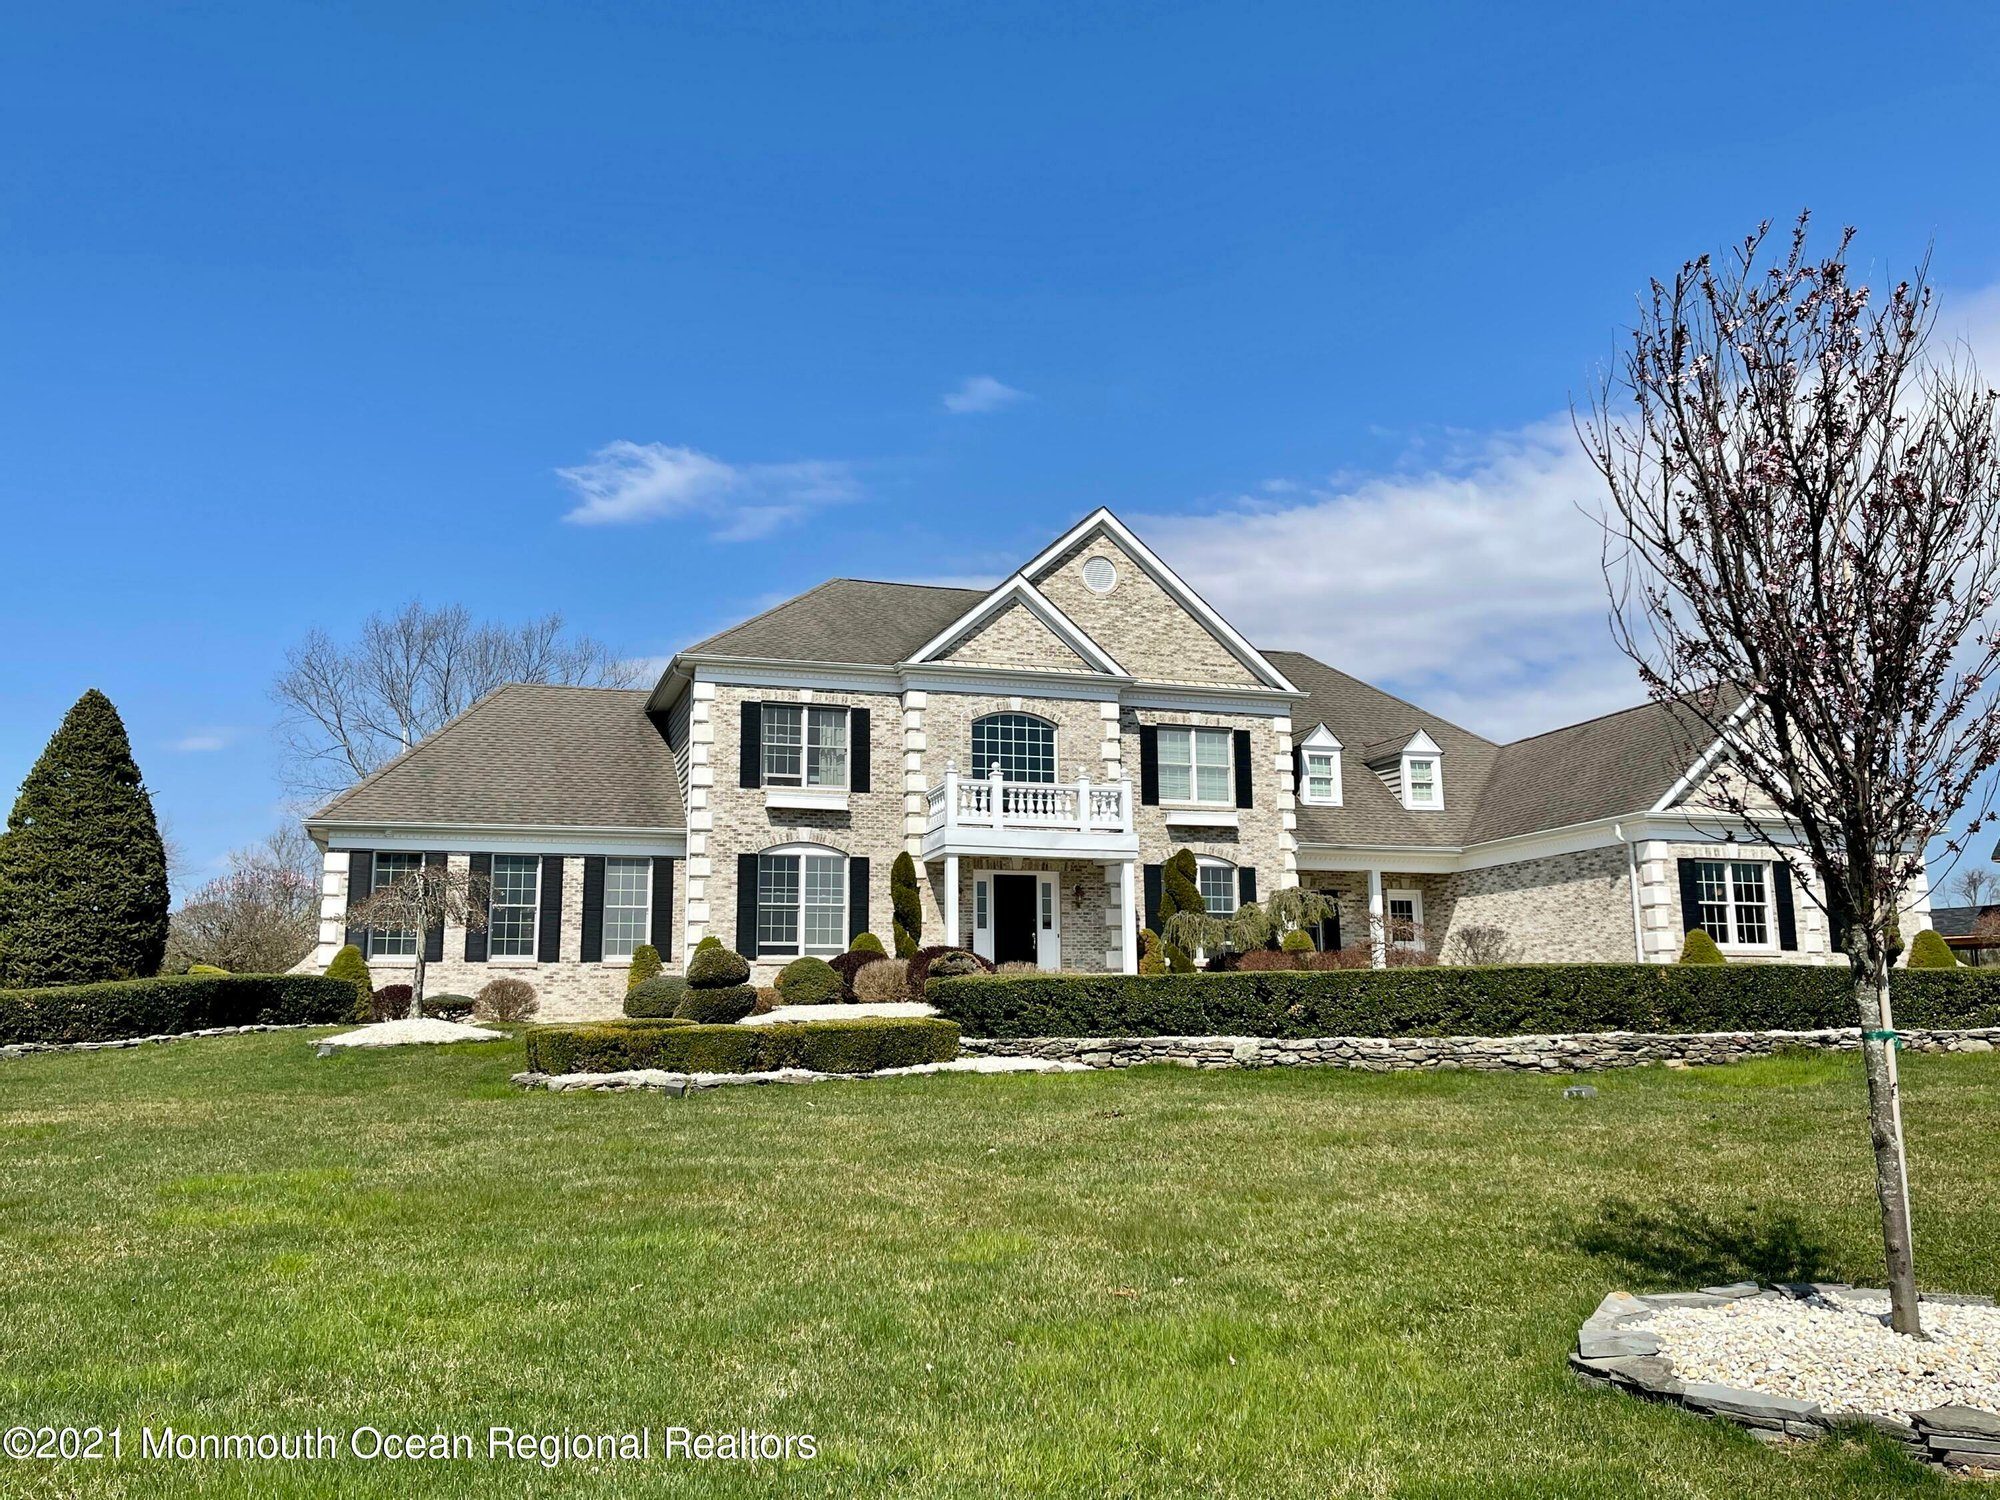 House in Farmingdale, New Jersey, United States 1